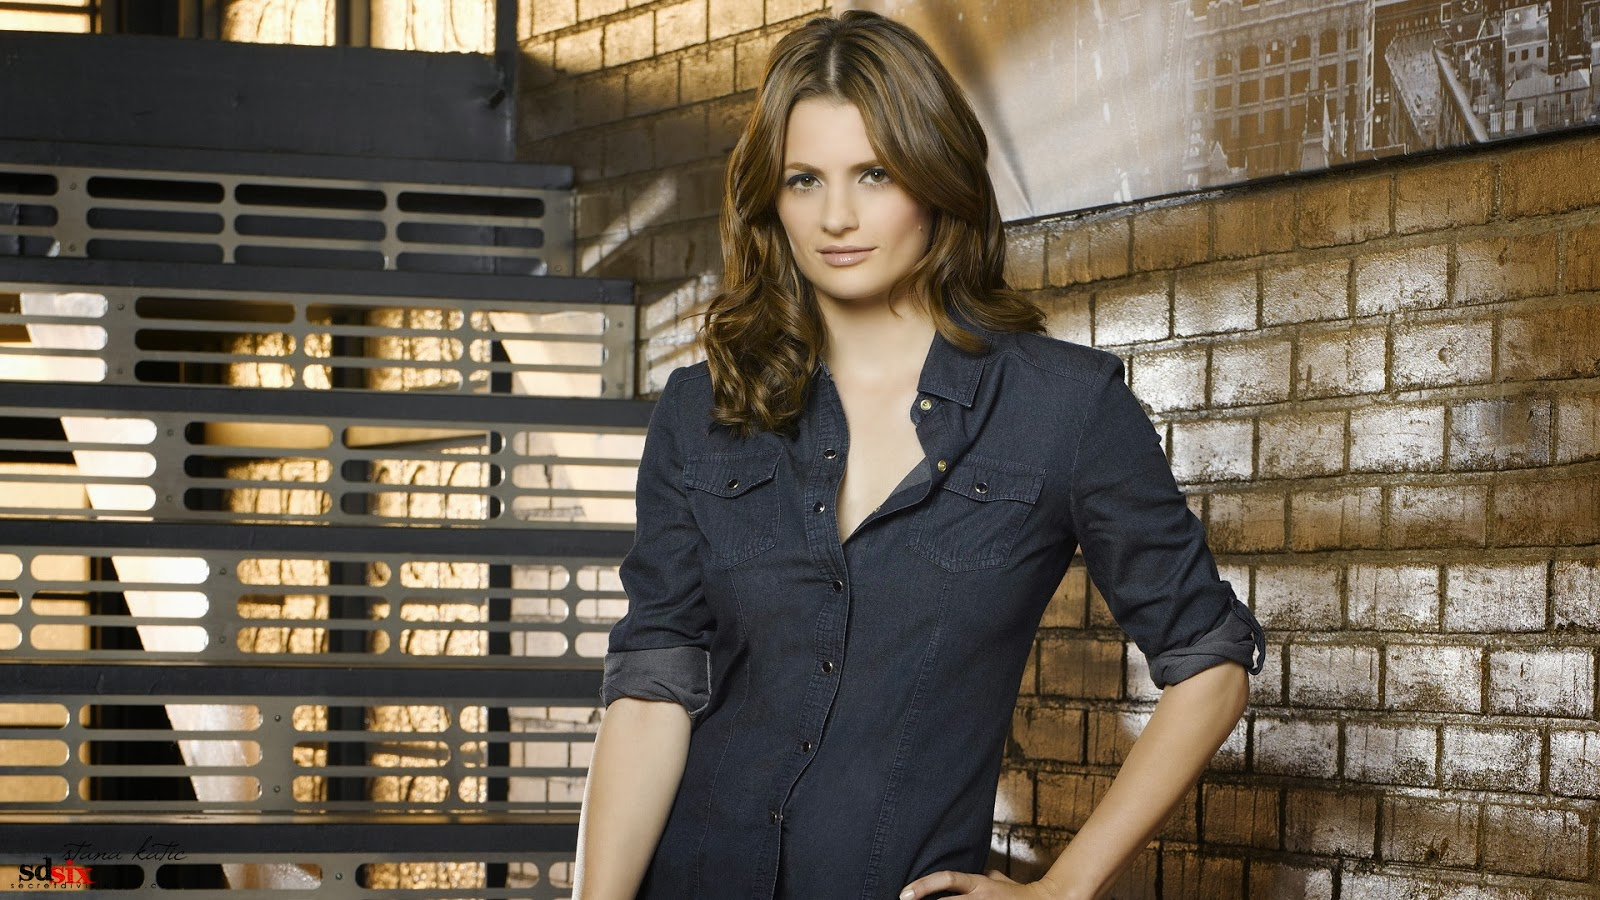 Stana Katic Facebook